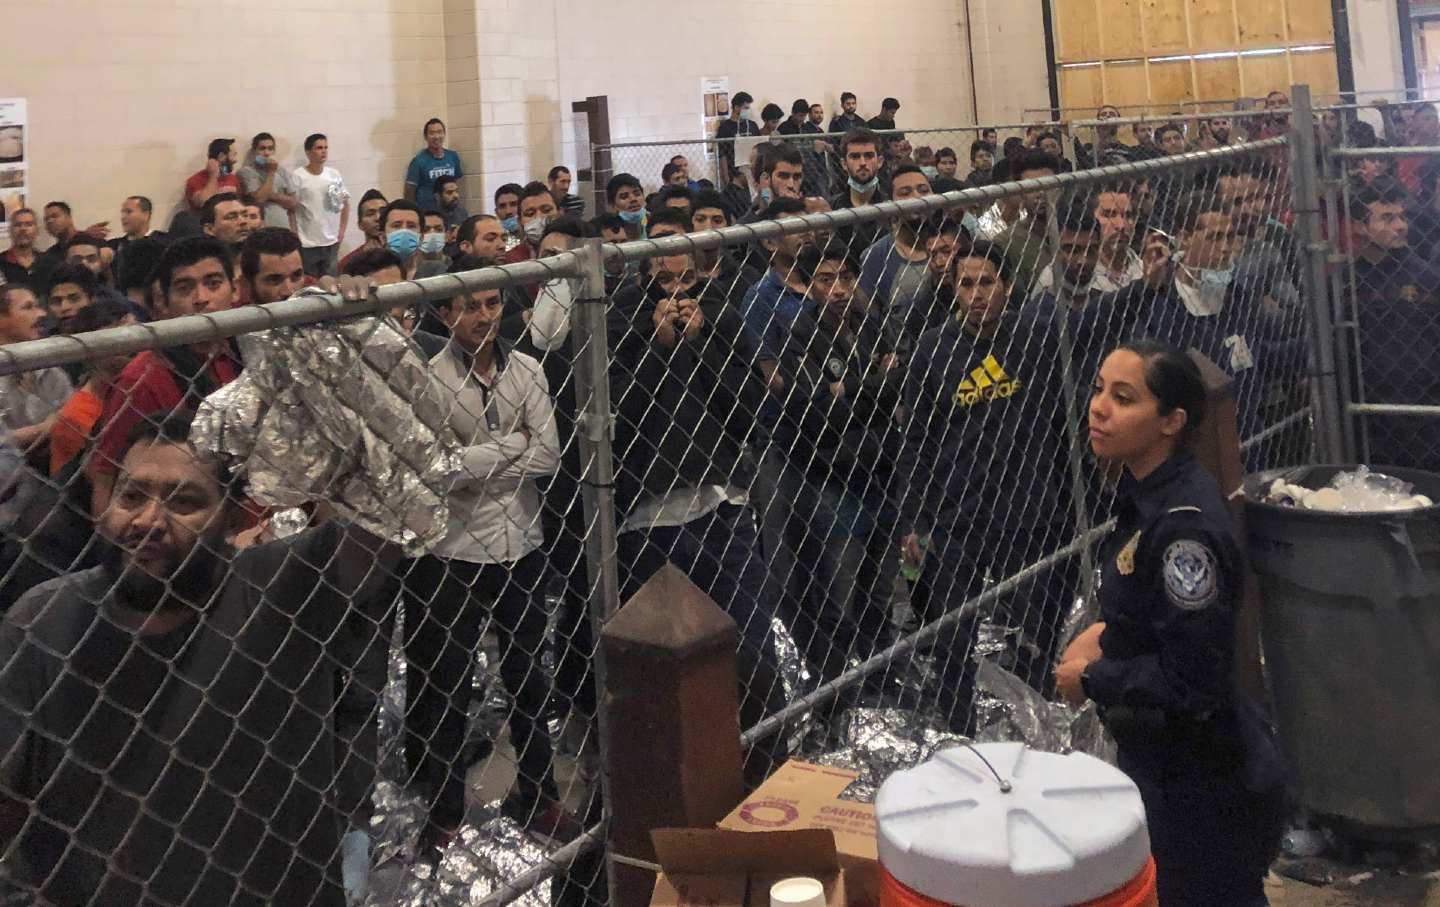 A crowded detention center with migrants looking in from behind a fence.